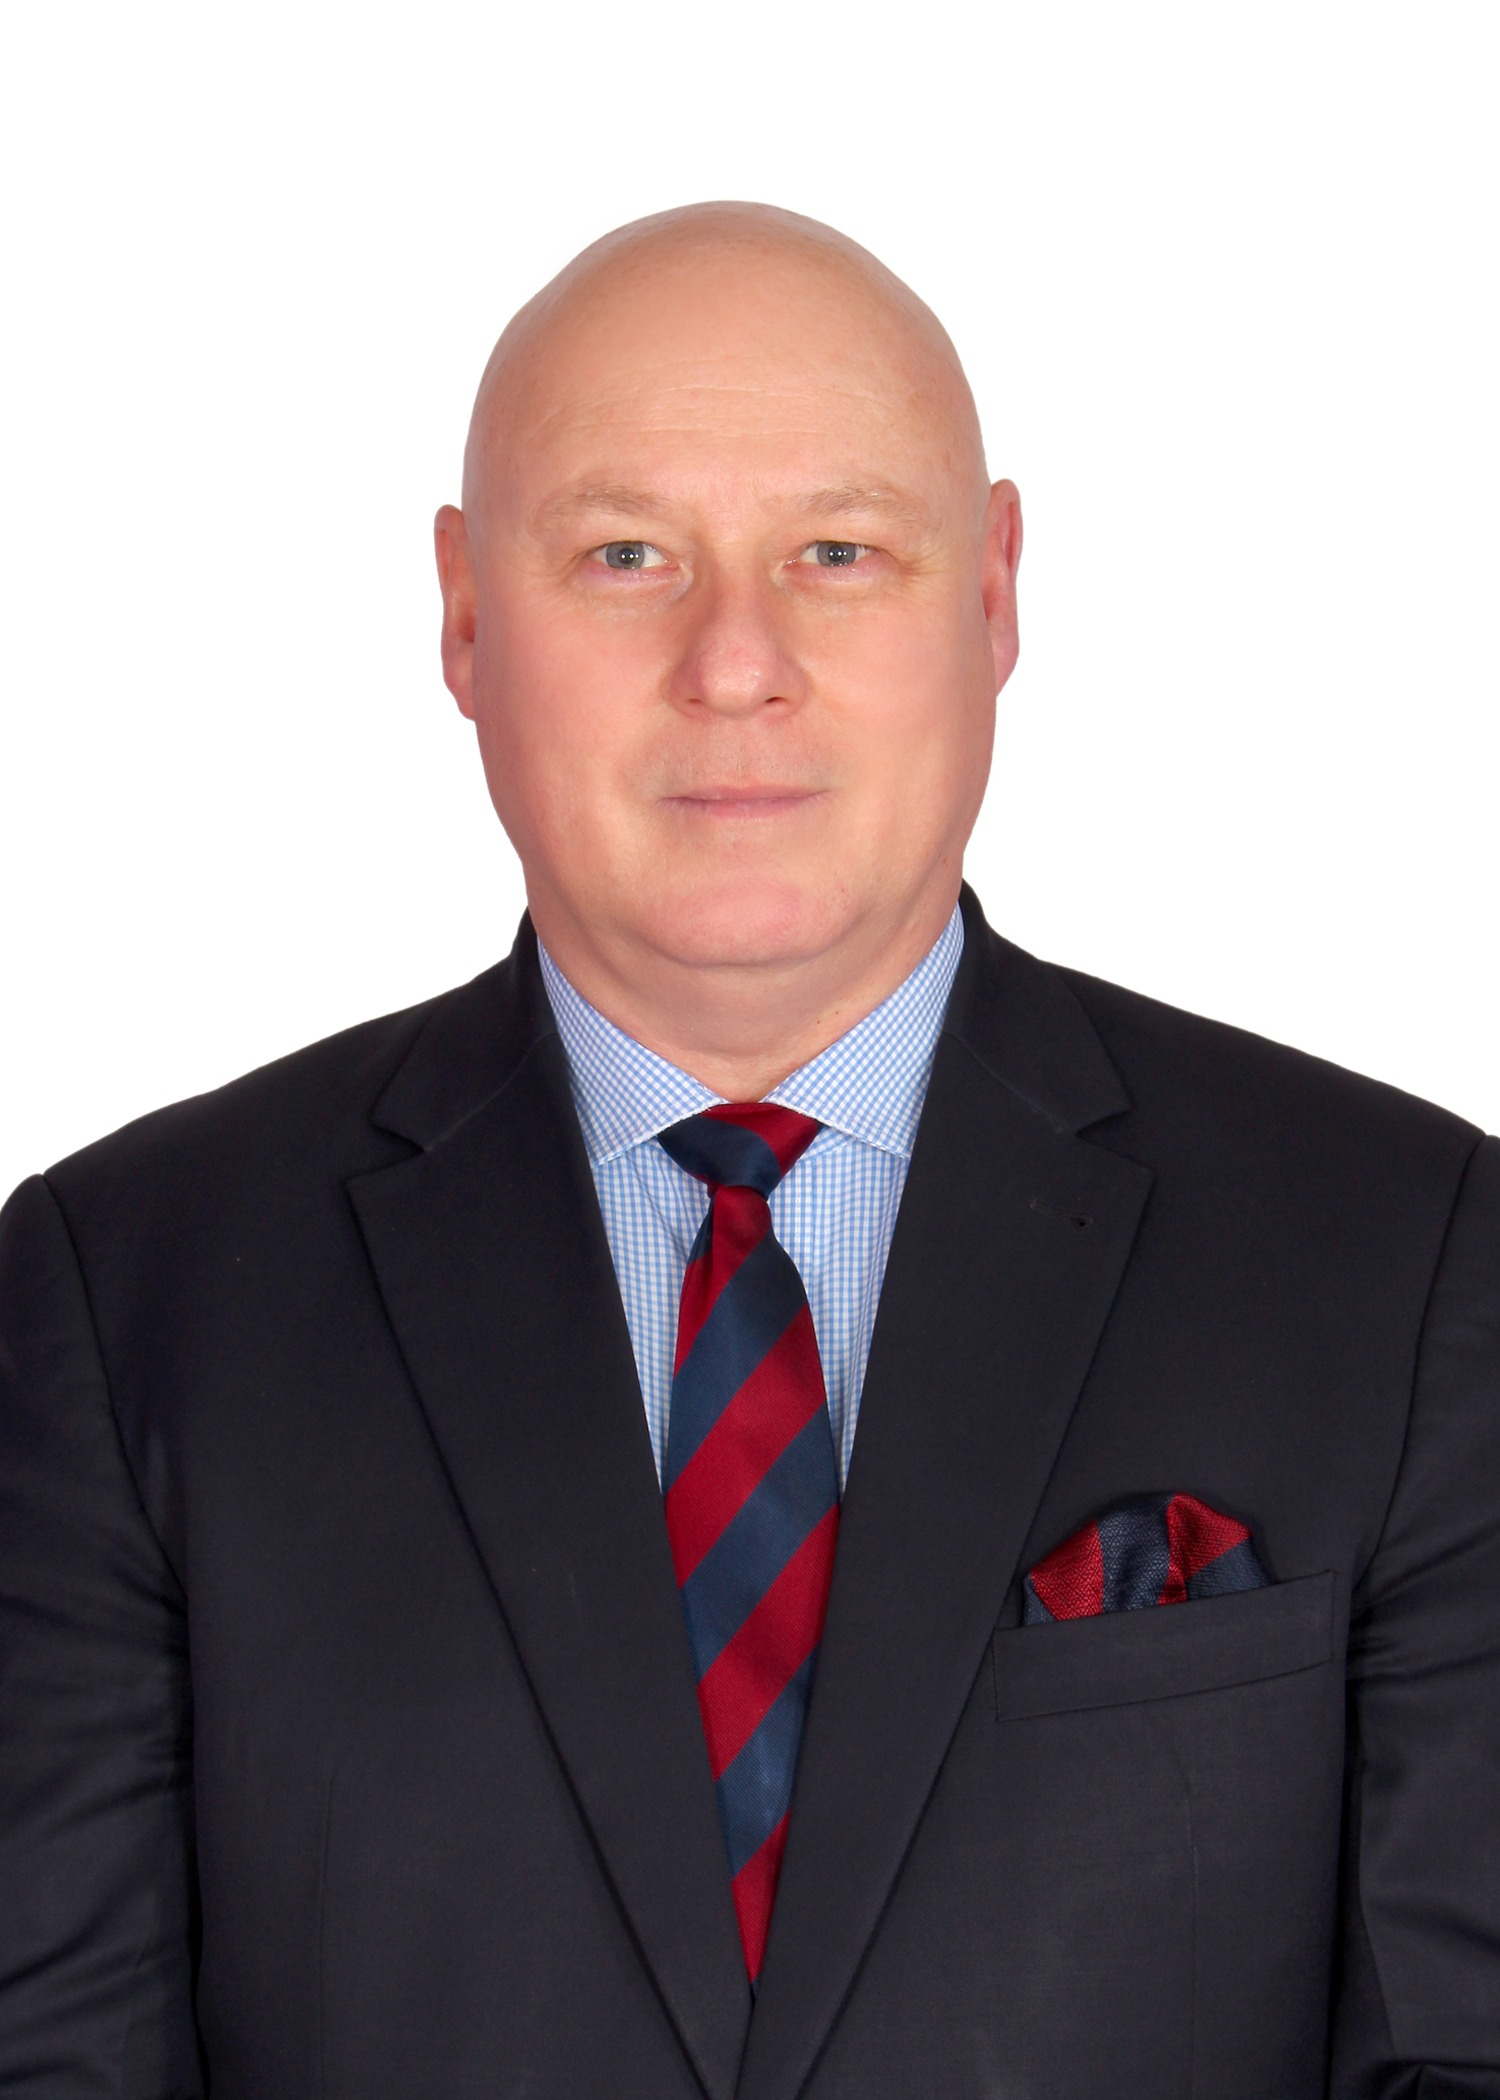 ACCL International Management Stephen Barclay-Evely Chief Executive Officer (CEO)